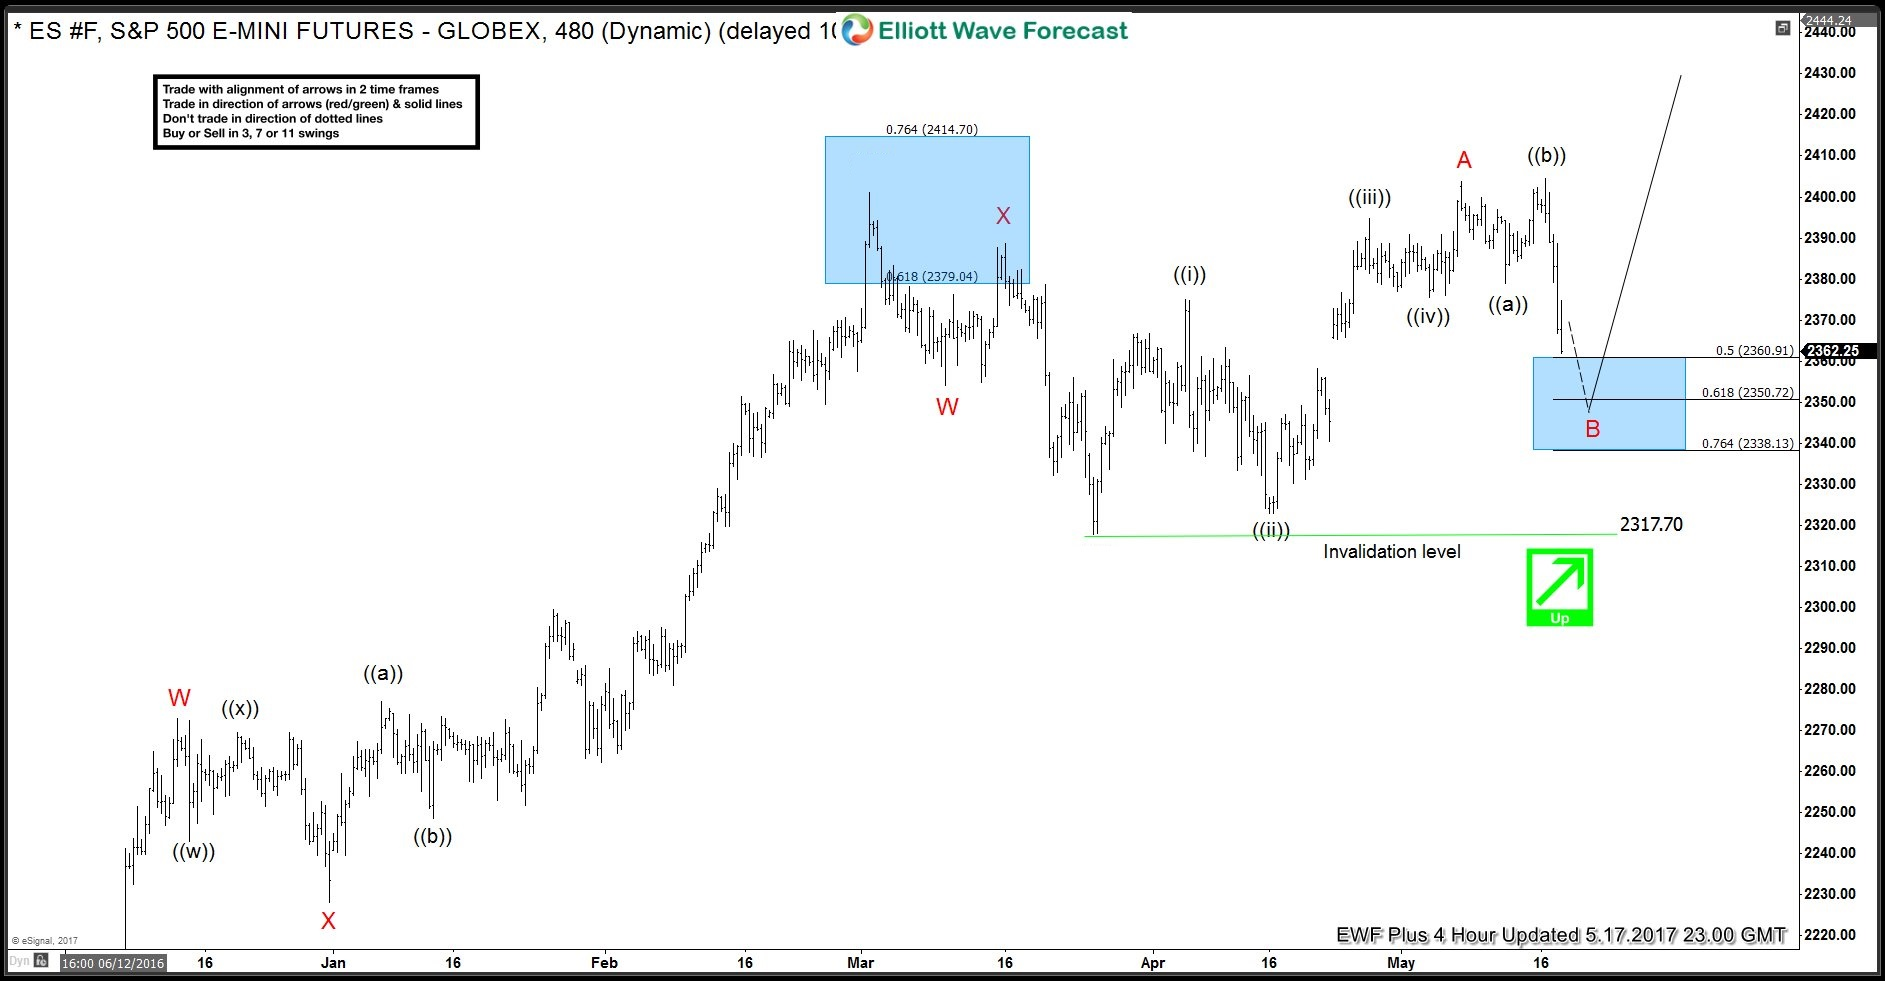 S&P 500 Elliott Wave 4 Hour